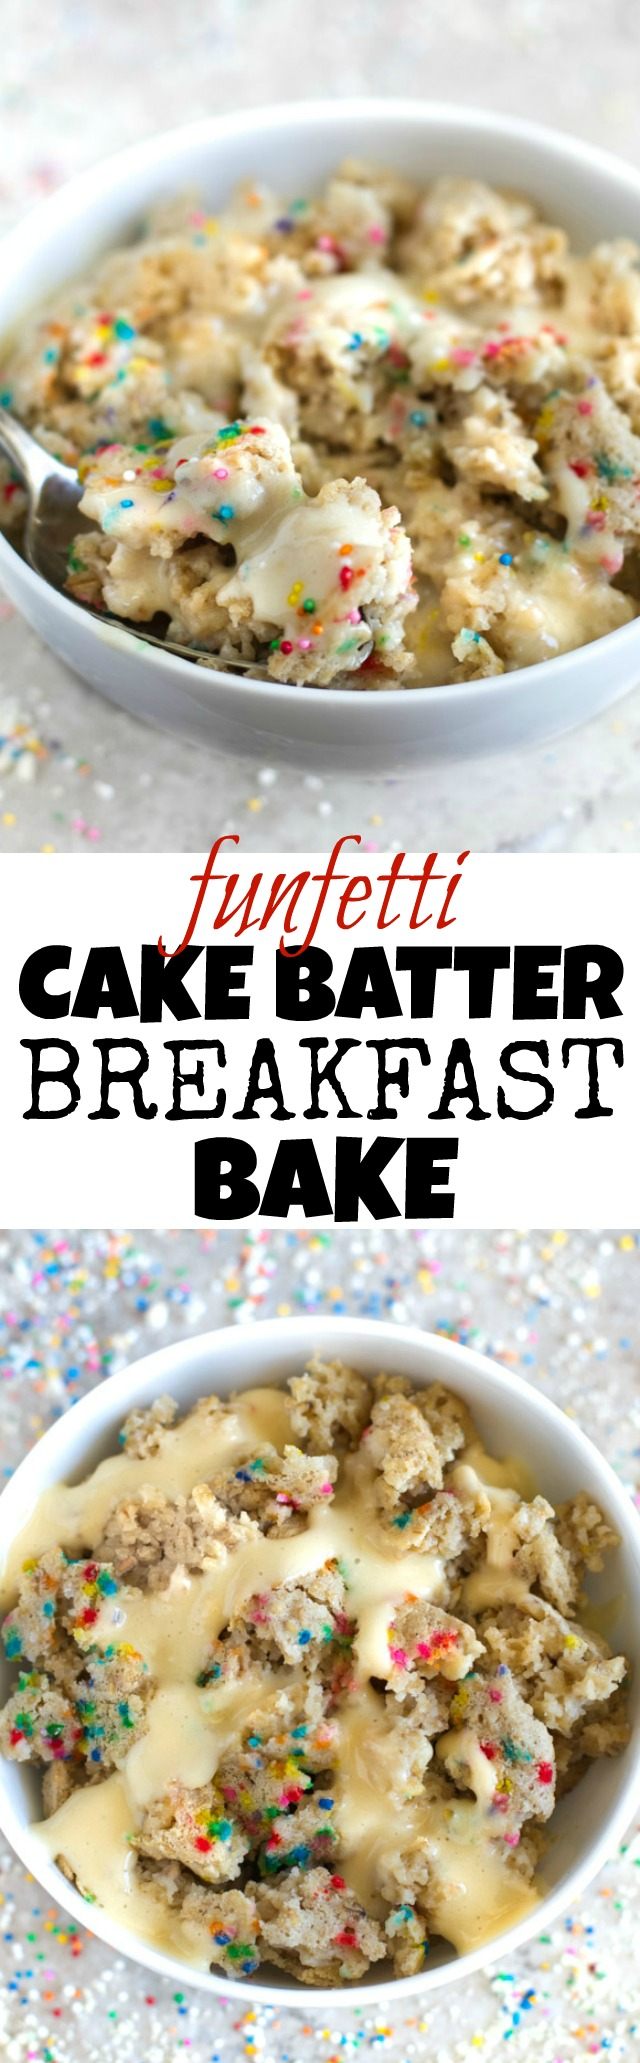 Funfetti Cake Batter Breakfast Bake Running With Spoons